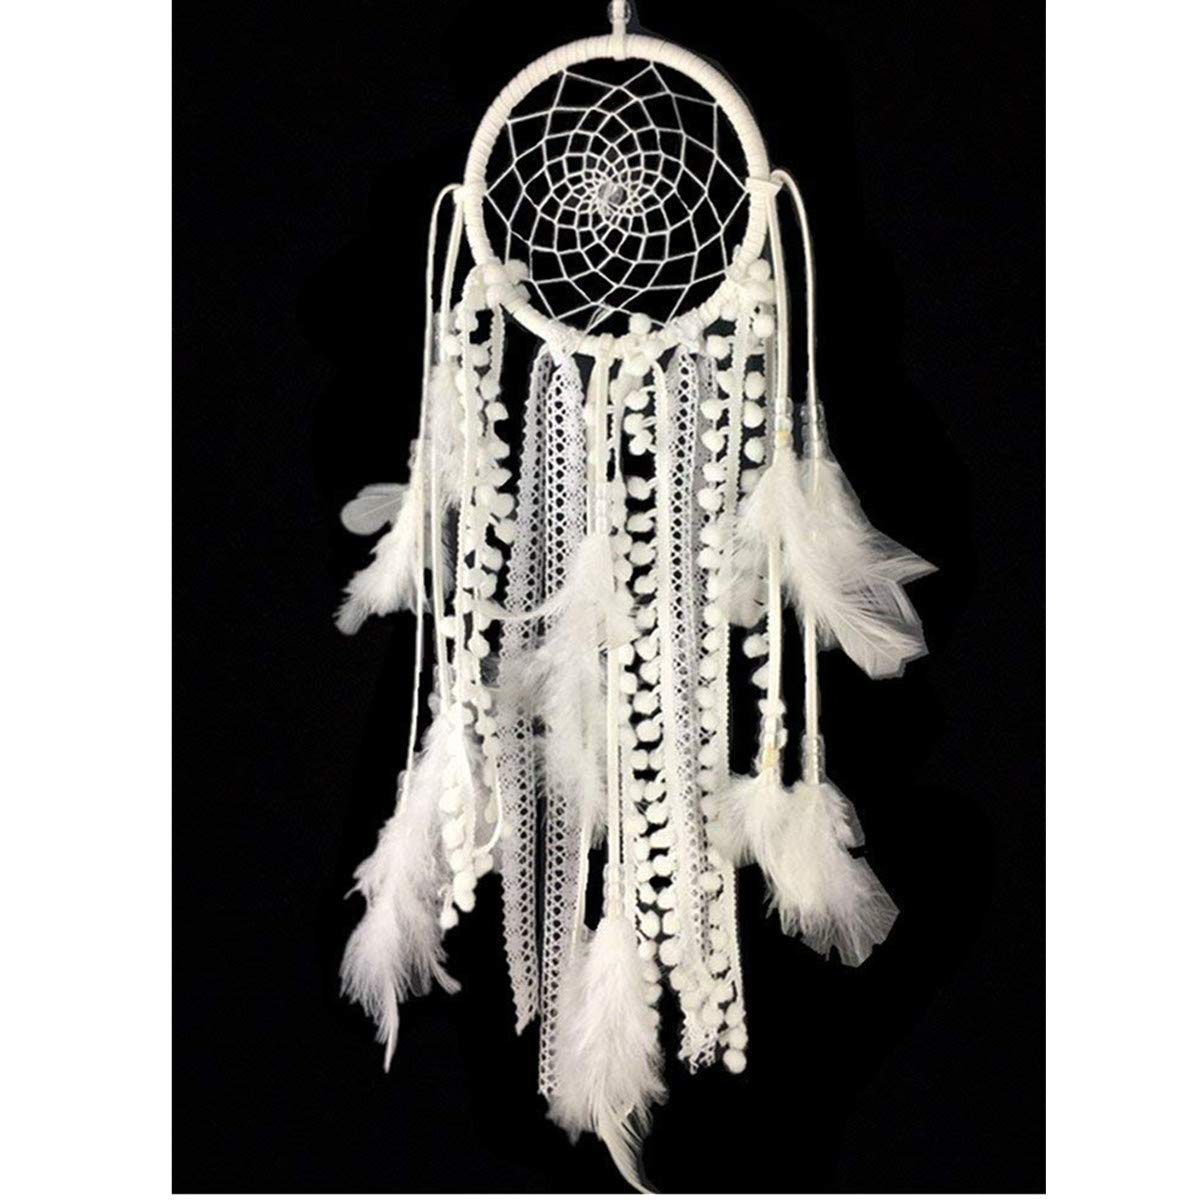 "Dremisland Dream Catcher Handmade Traditional White Feather Wall Hanging Car Hanging Home Decoration Ornament Decor Ornament Craft Gift (Multicolor(Dia 7"")) DR-002"